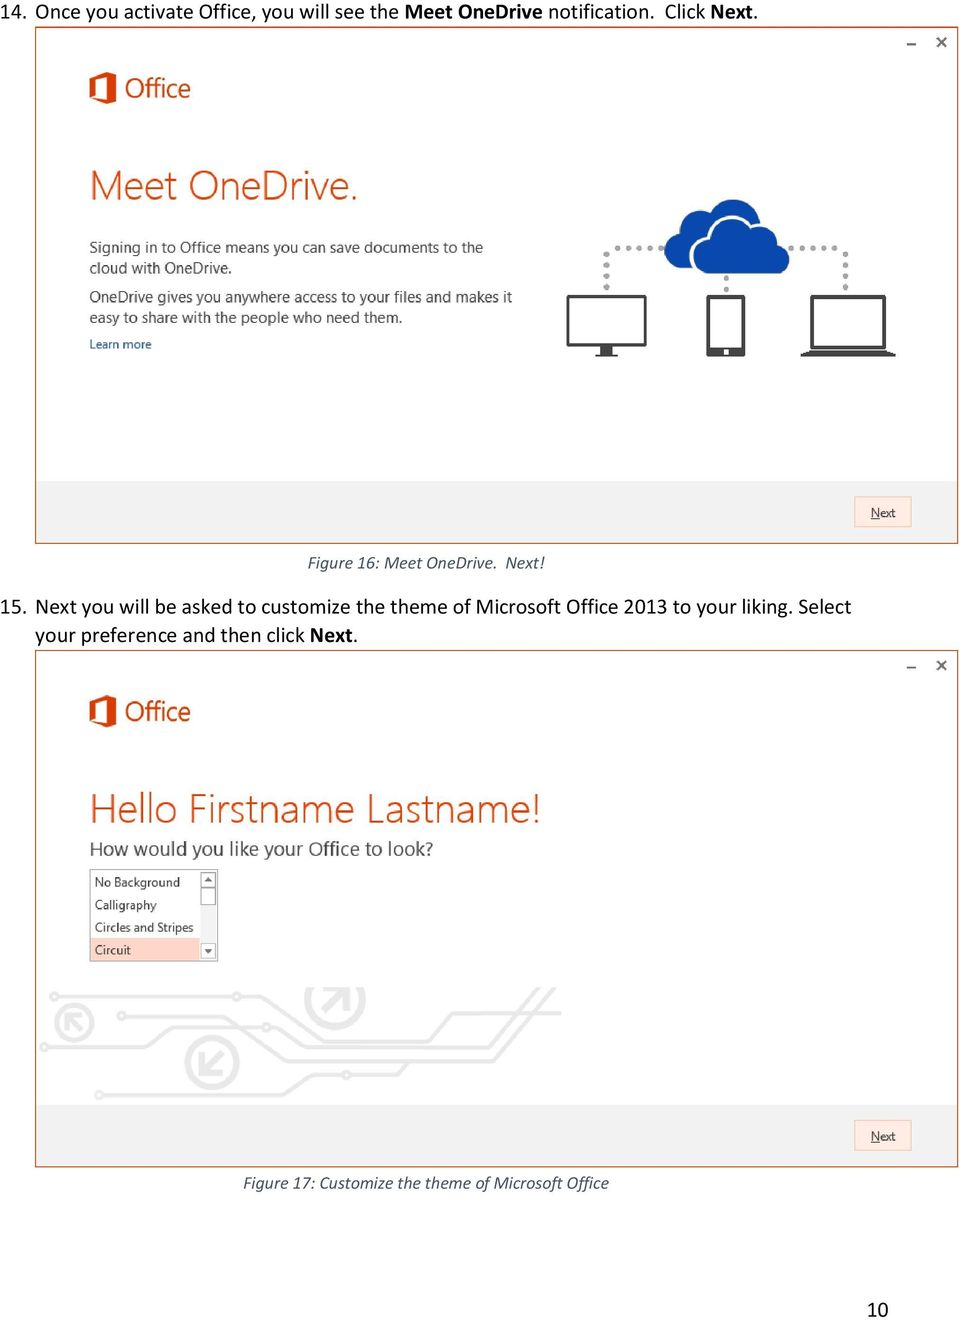 Next you will be asked to customize the theme of Microsoft Office 2013 to